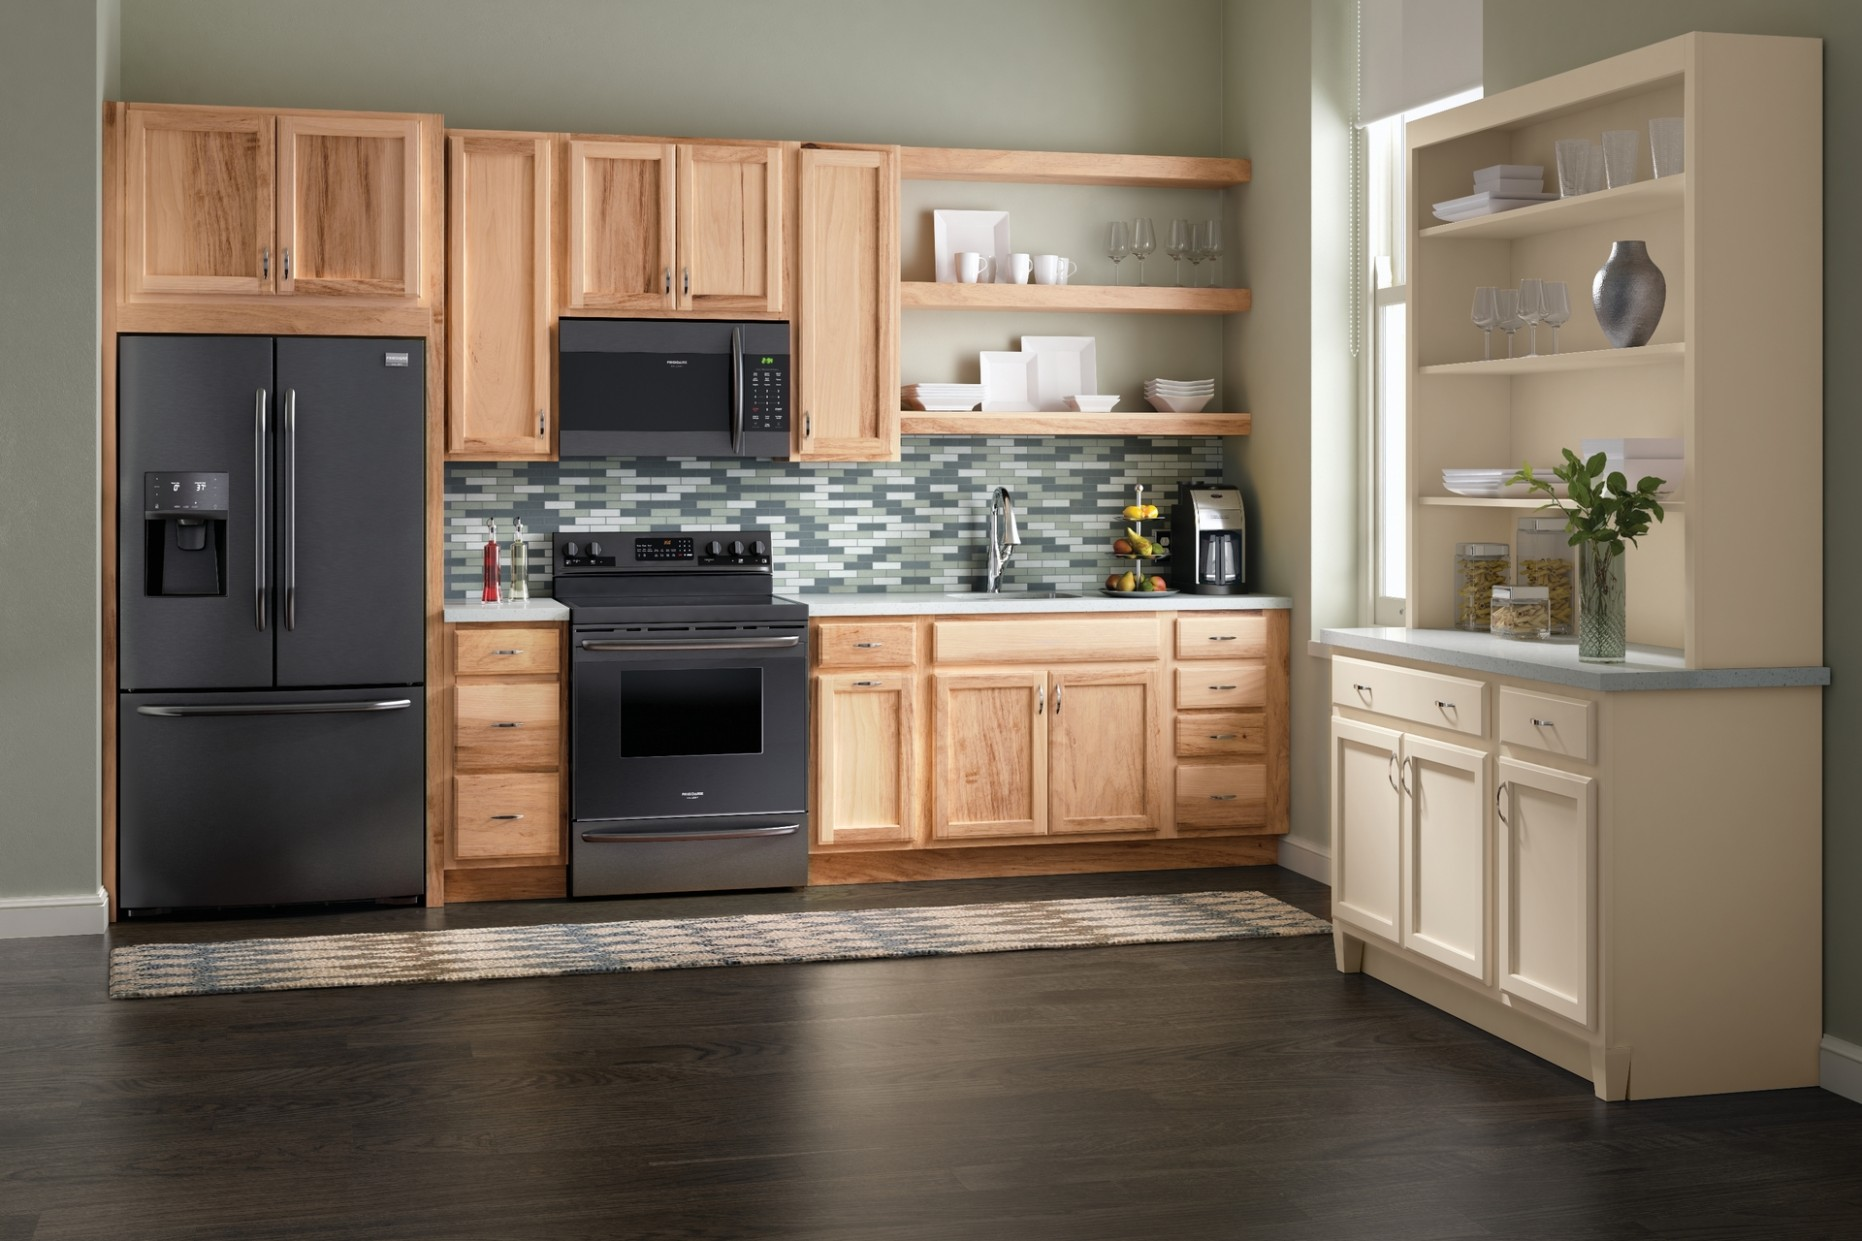 Cardell Kitchen Cabinets - Springmont Square in Natural - Natural Hickory Kitchen Cabinets